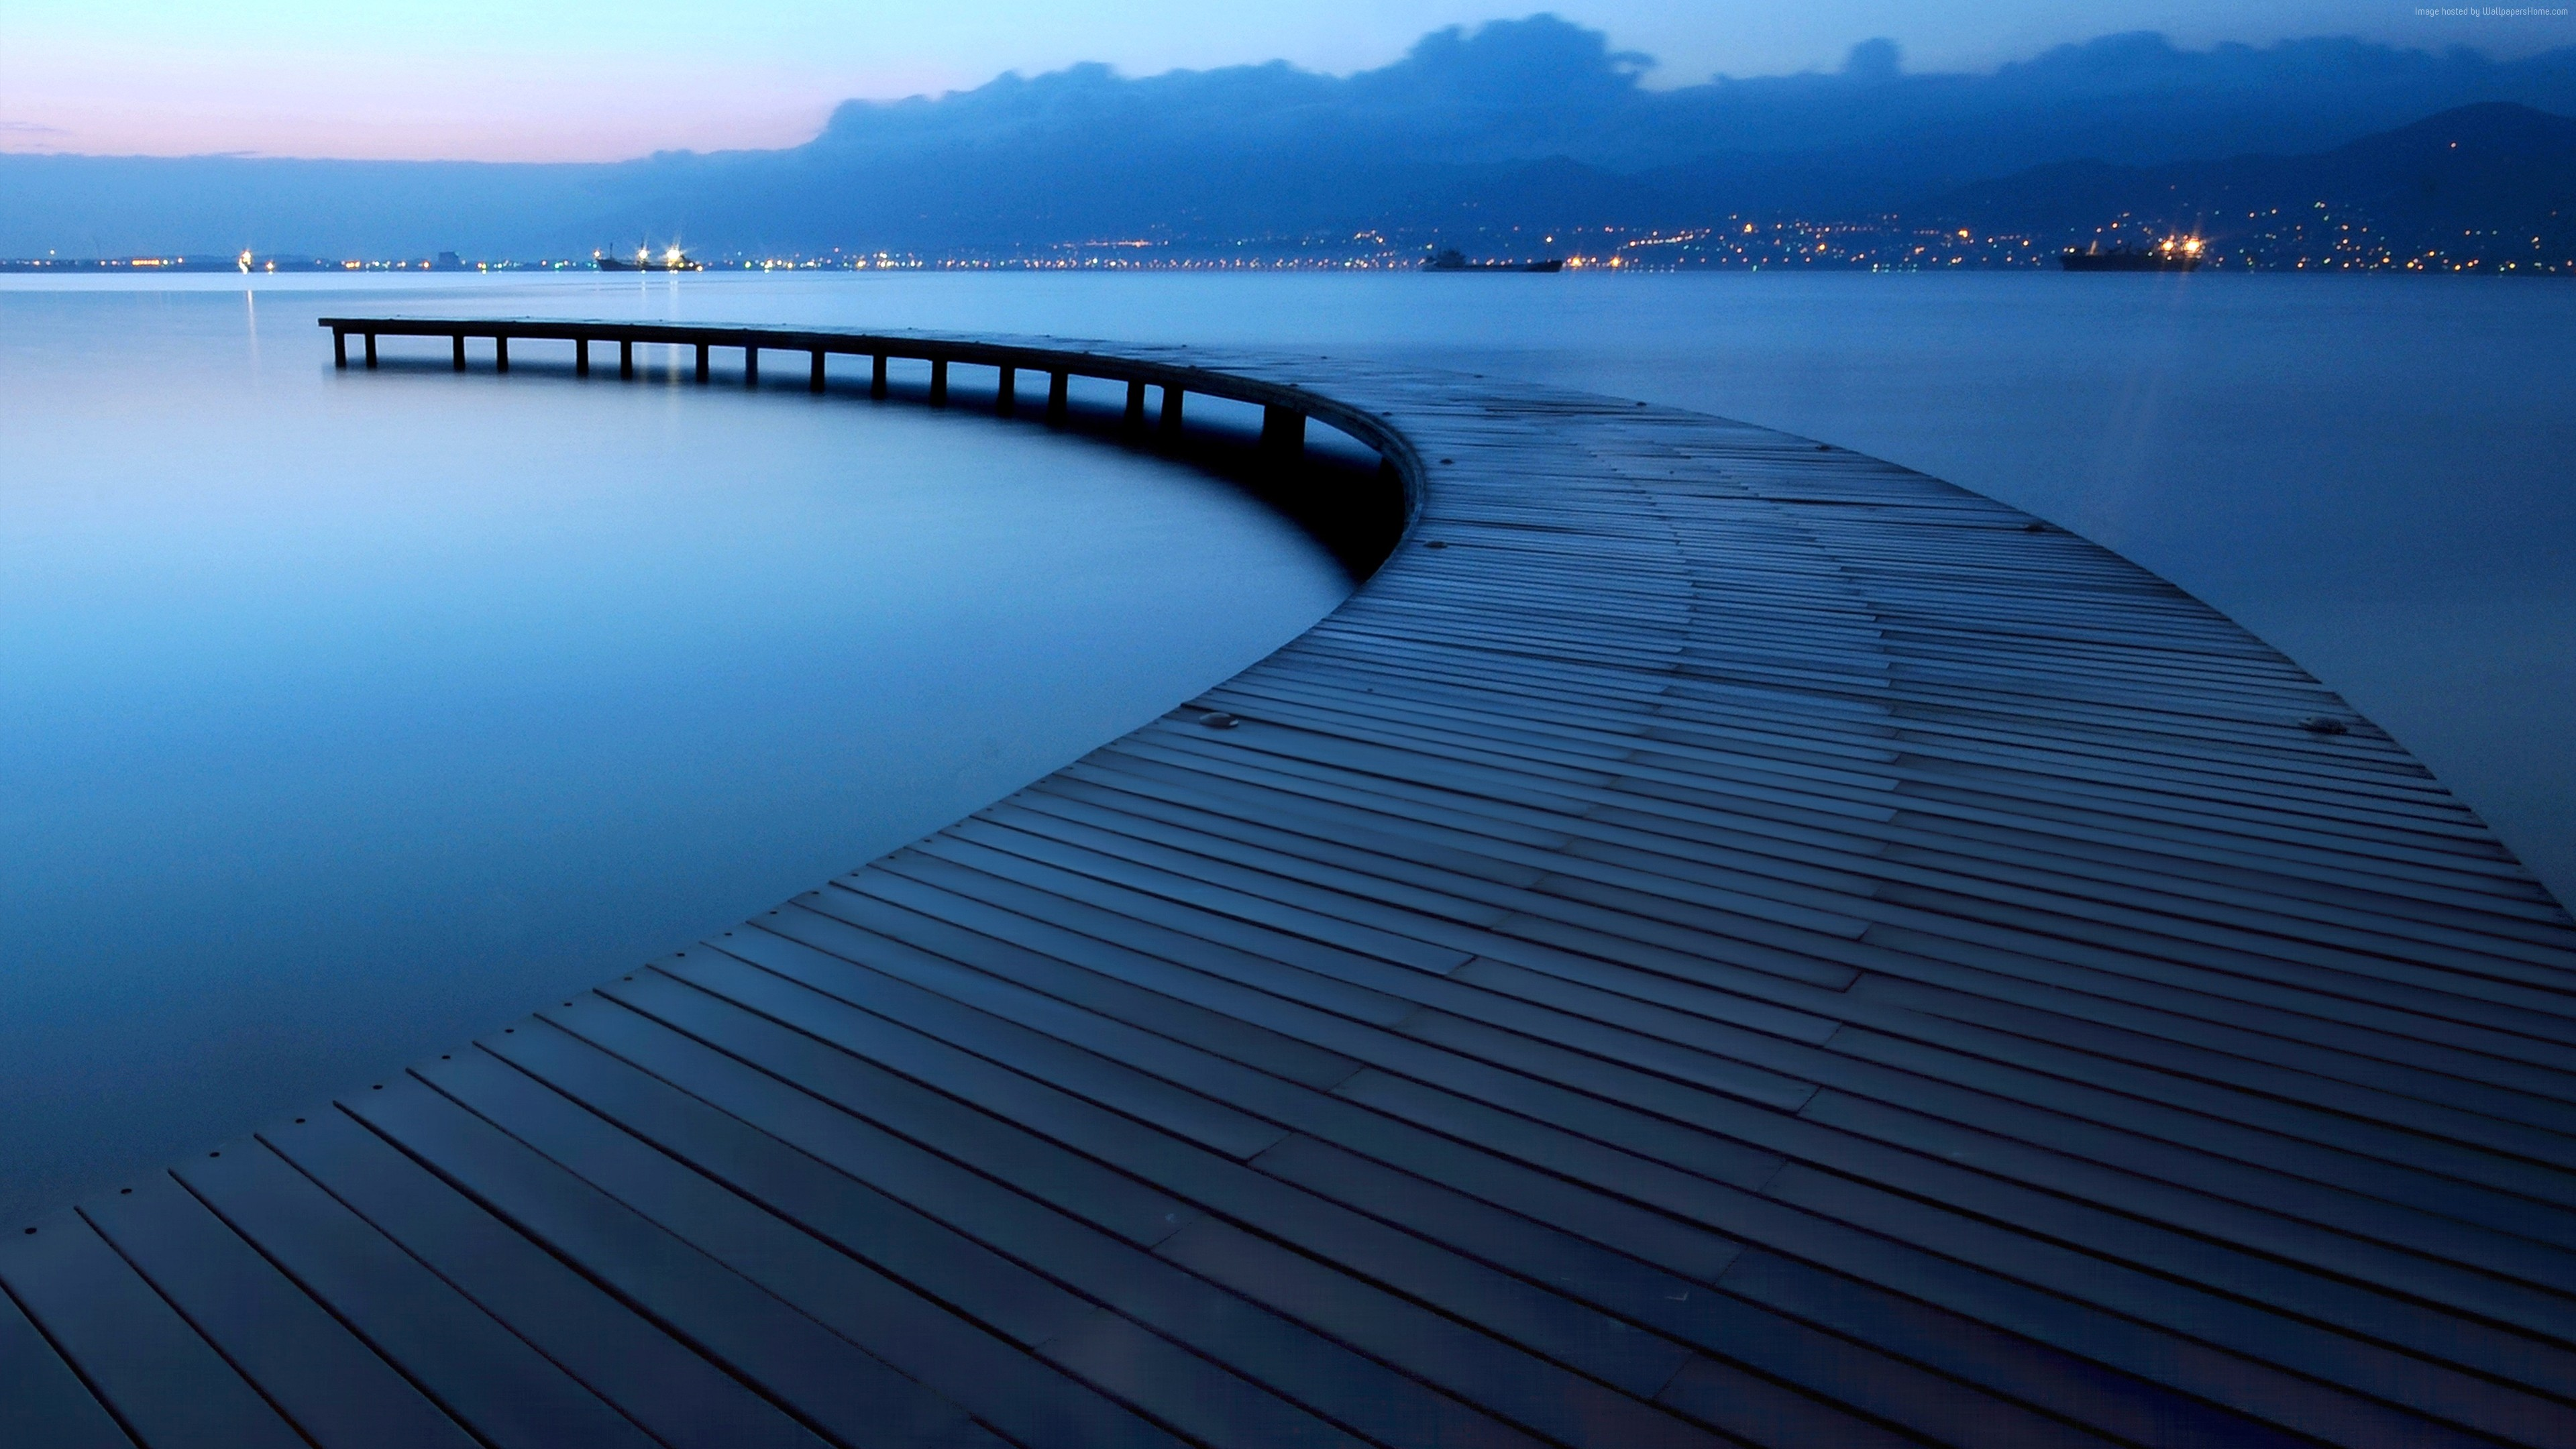 Wallpaper lake, 4k, 5k wallpaper, evening, pier, Nature